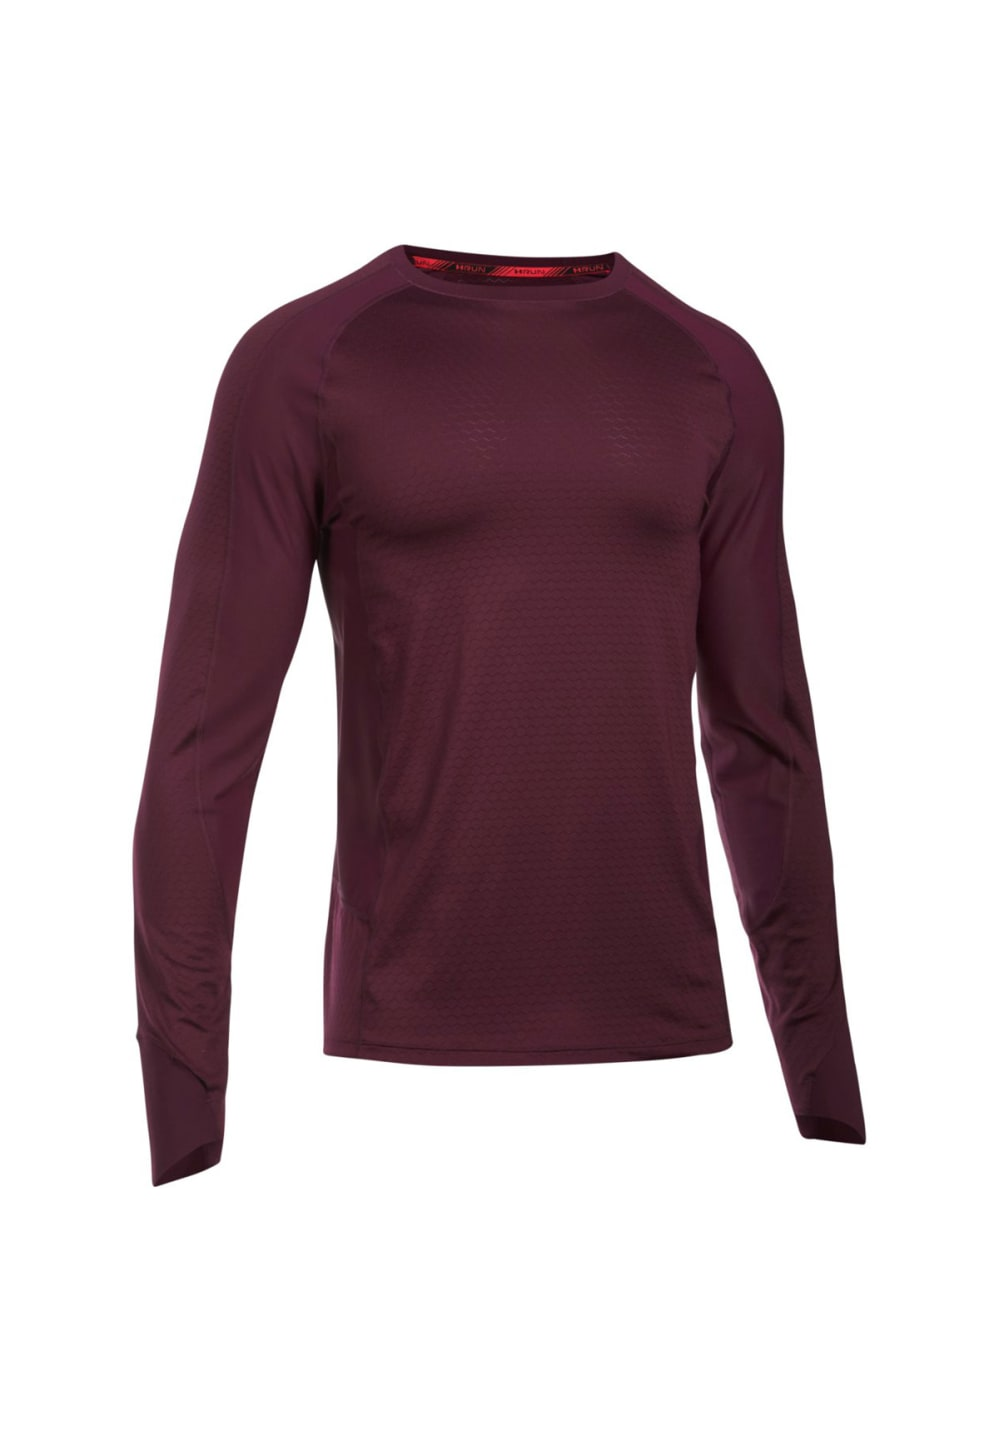 10a1596c Under Armour ASG Reactor Run Long Sleeve - Running tops for Men - Red